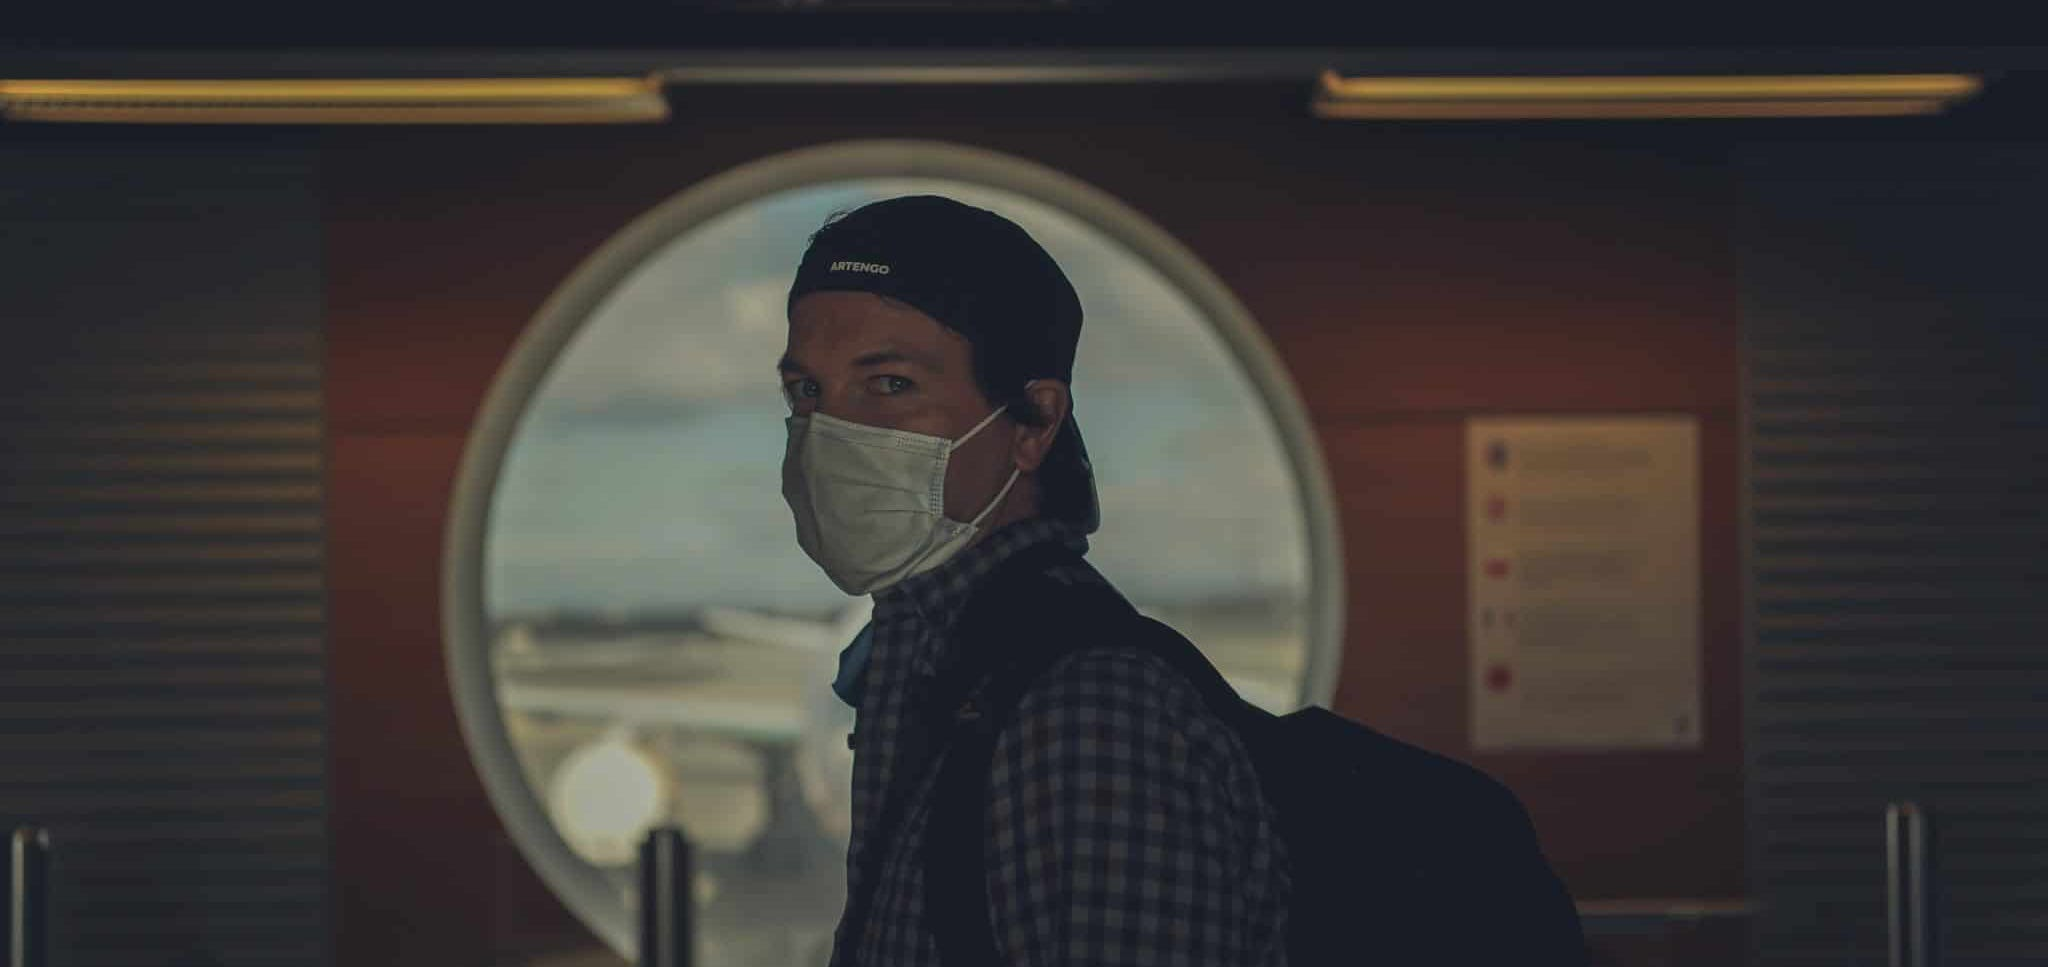 traveller wearing a mask at an airport